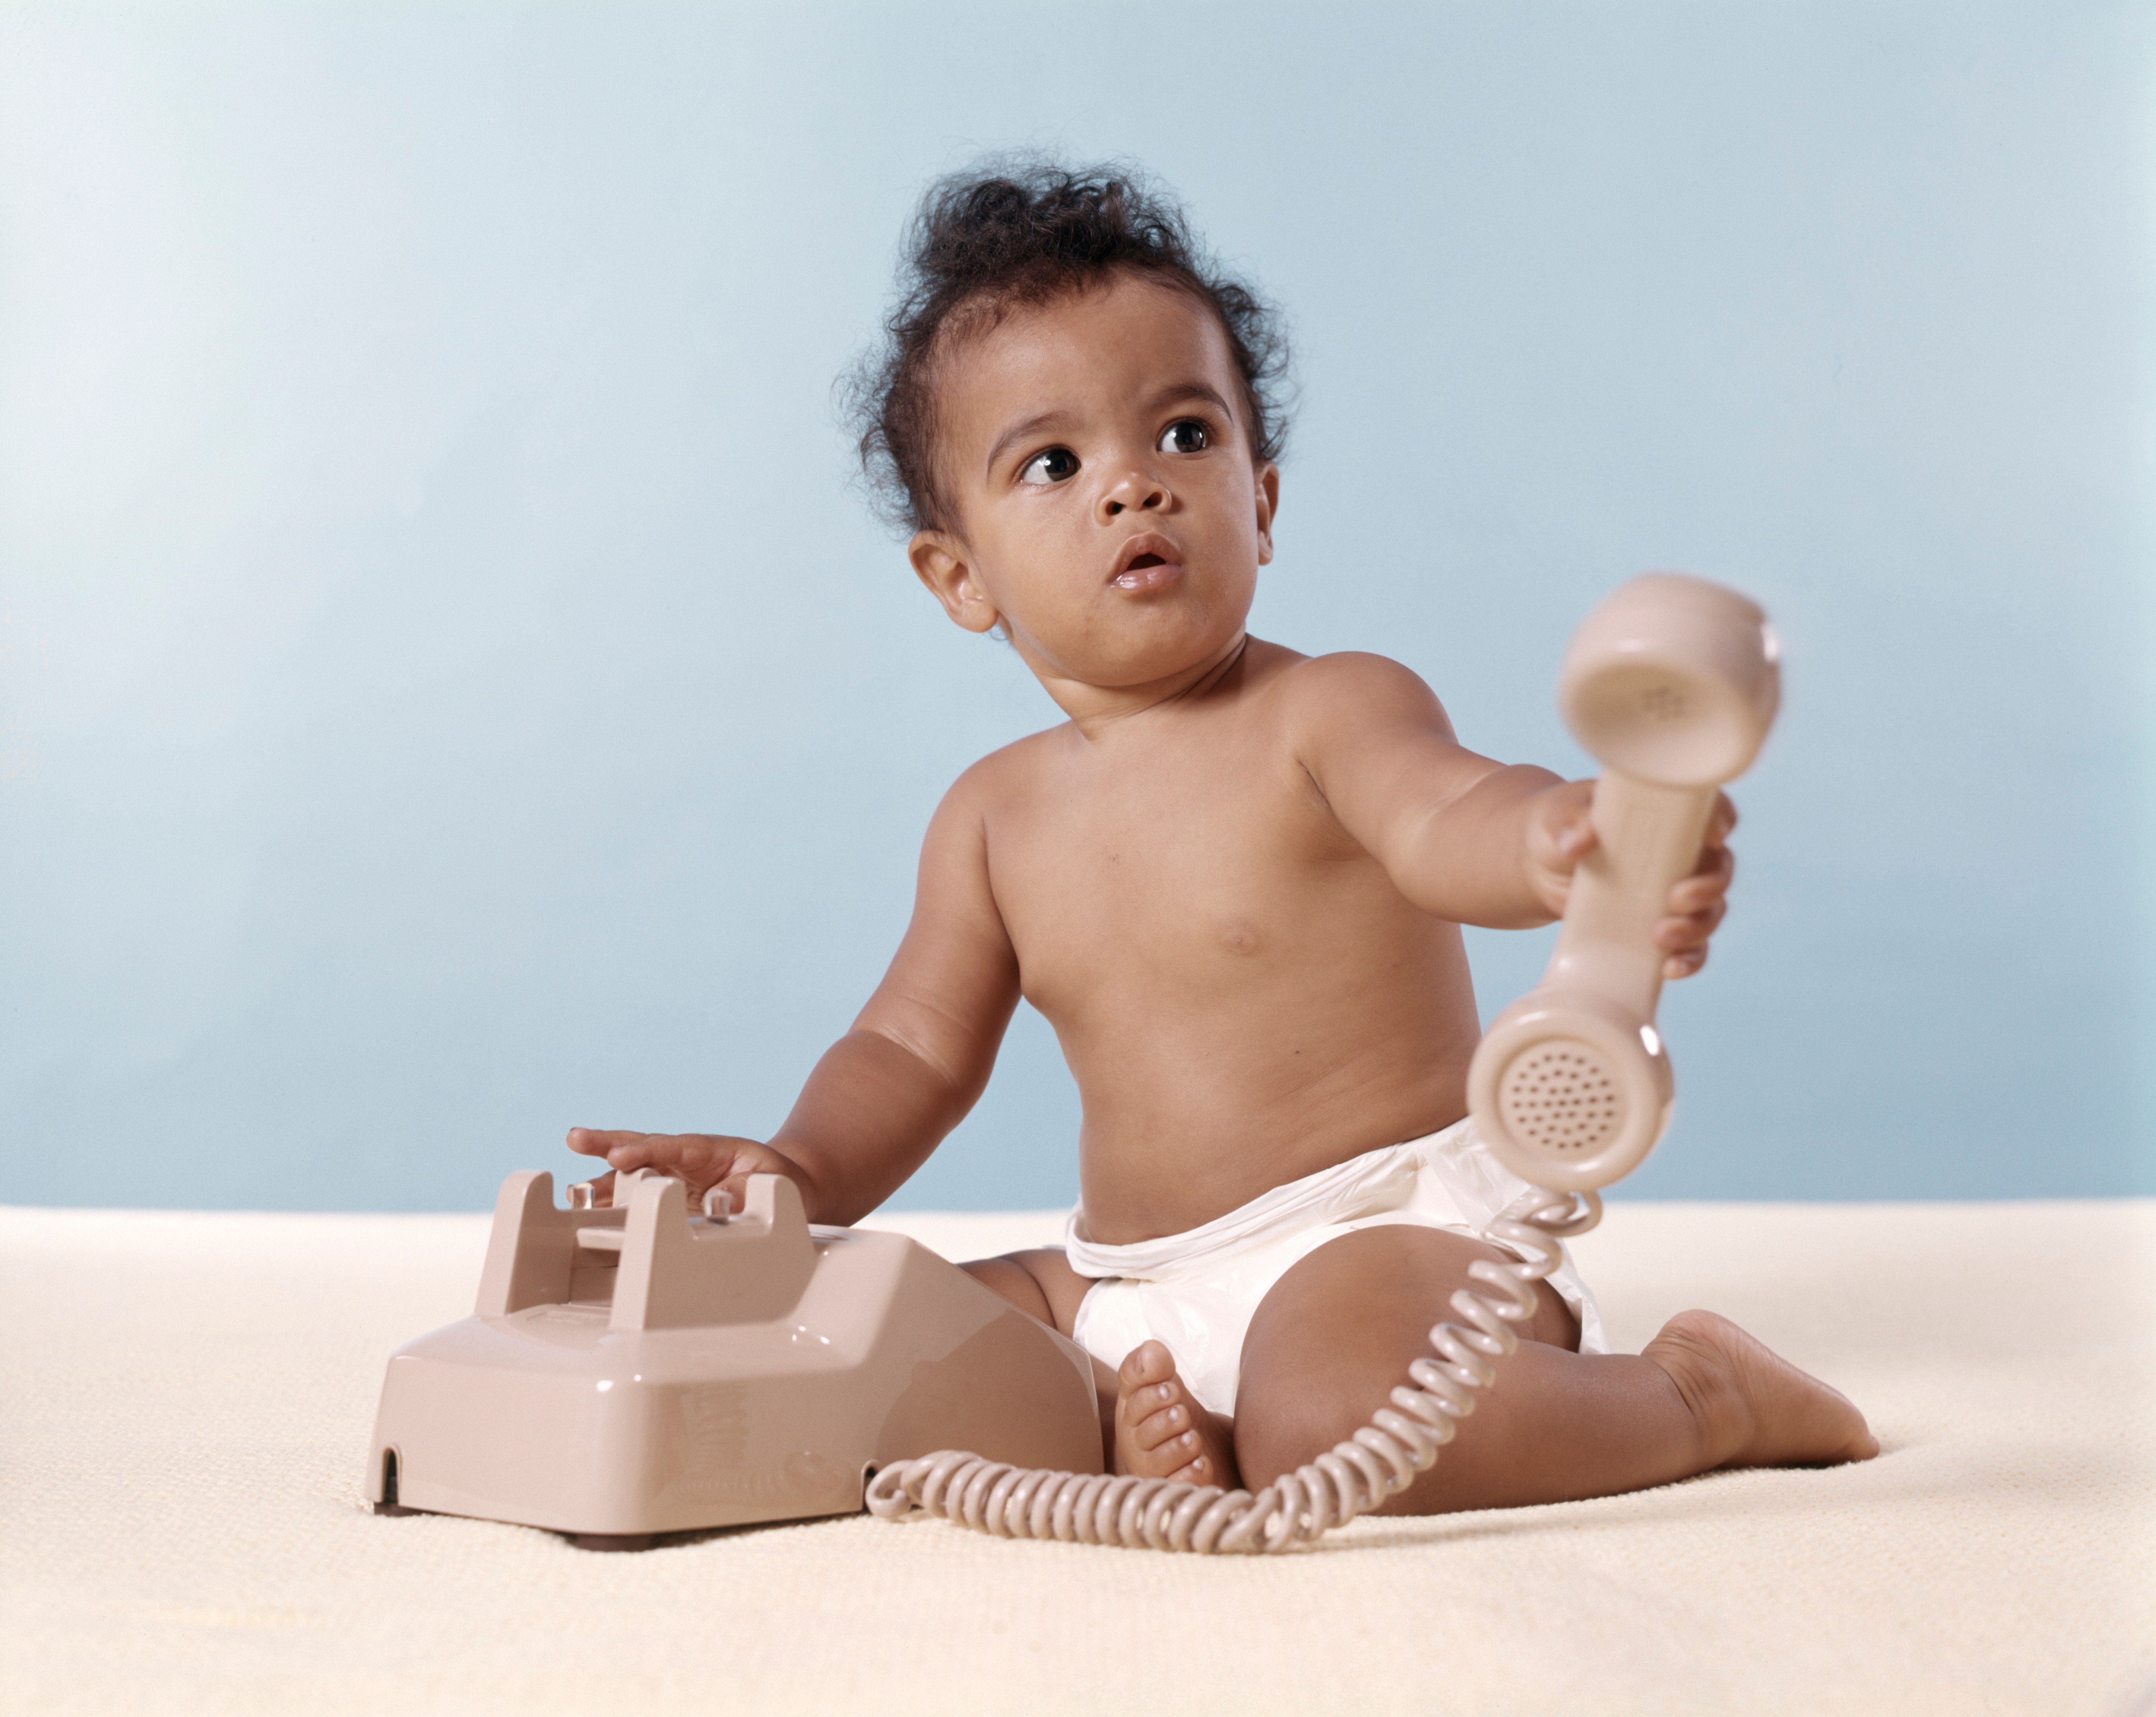 UNITED STATES - Circa 1960s:  African-American Baby In Diaper Holding Telephone.